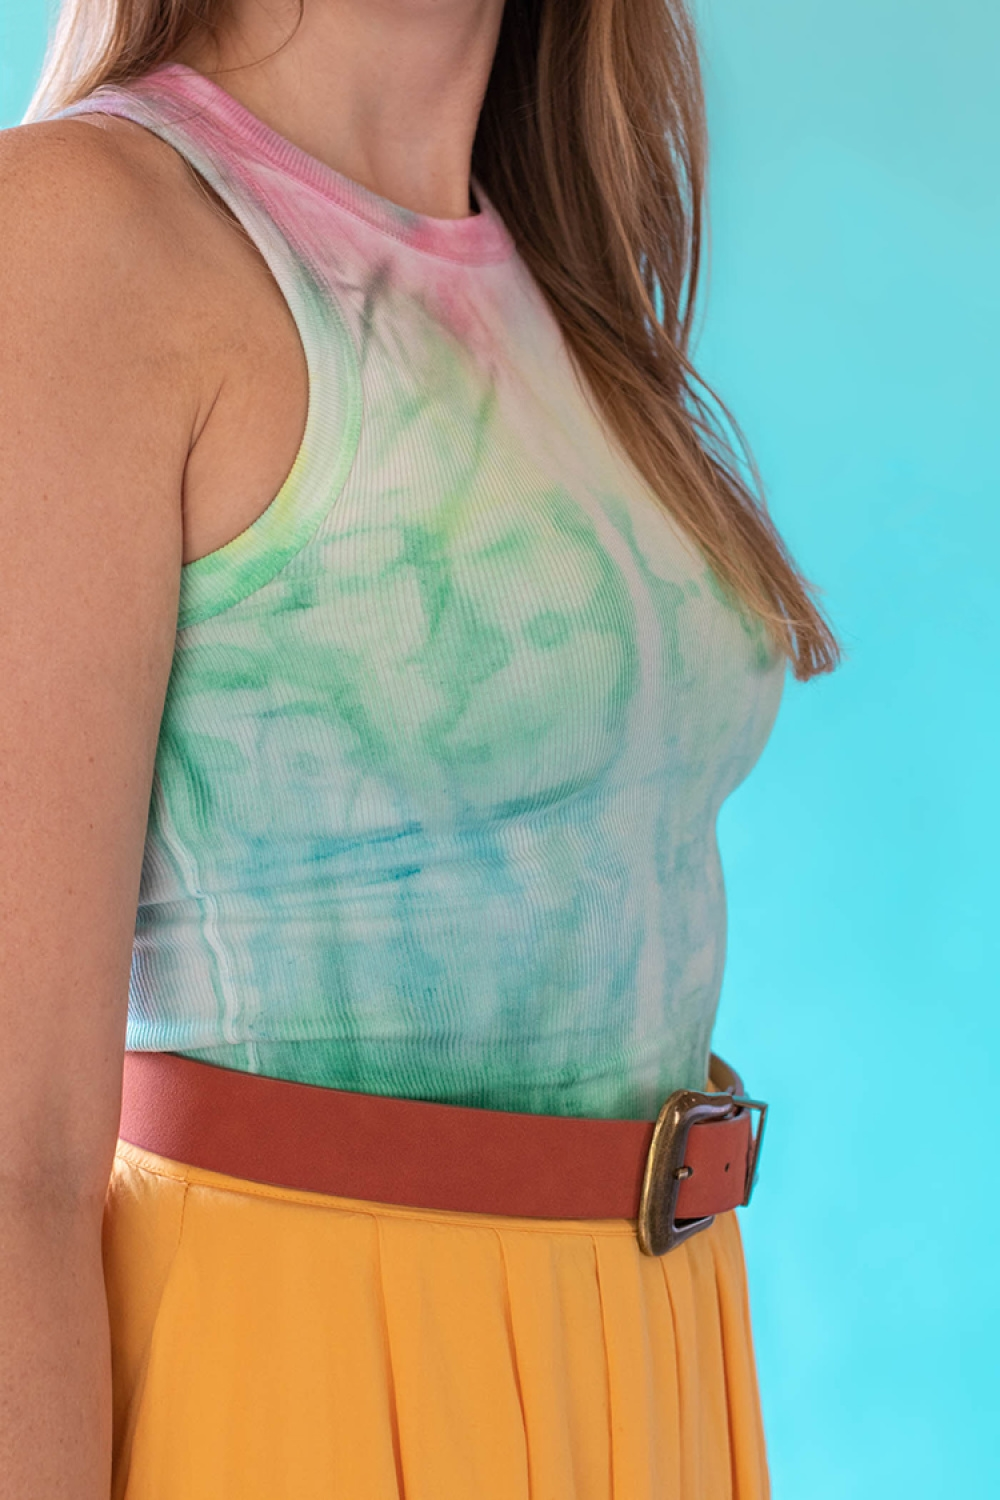 DIY Tie Dye With Fabric Paint